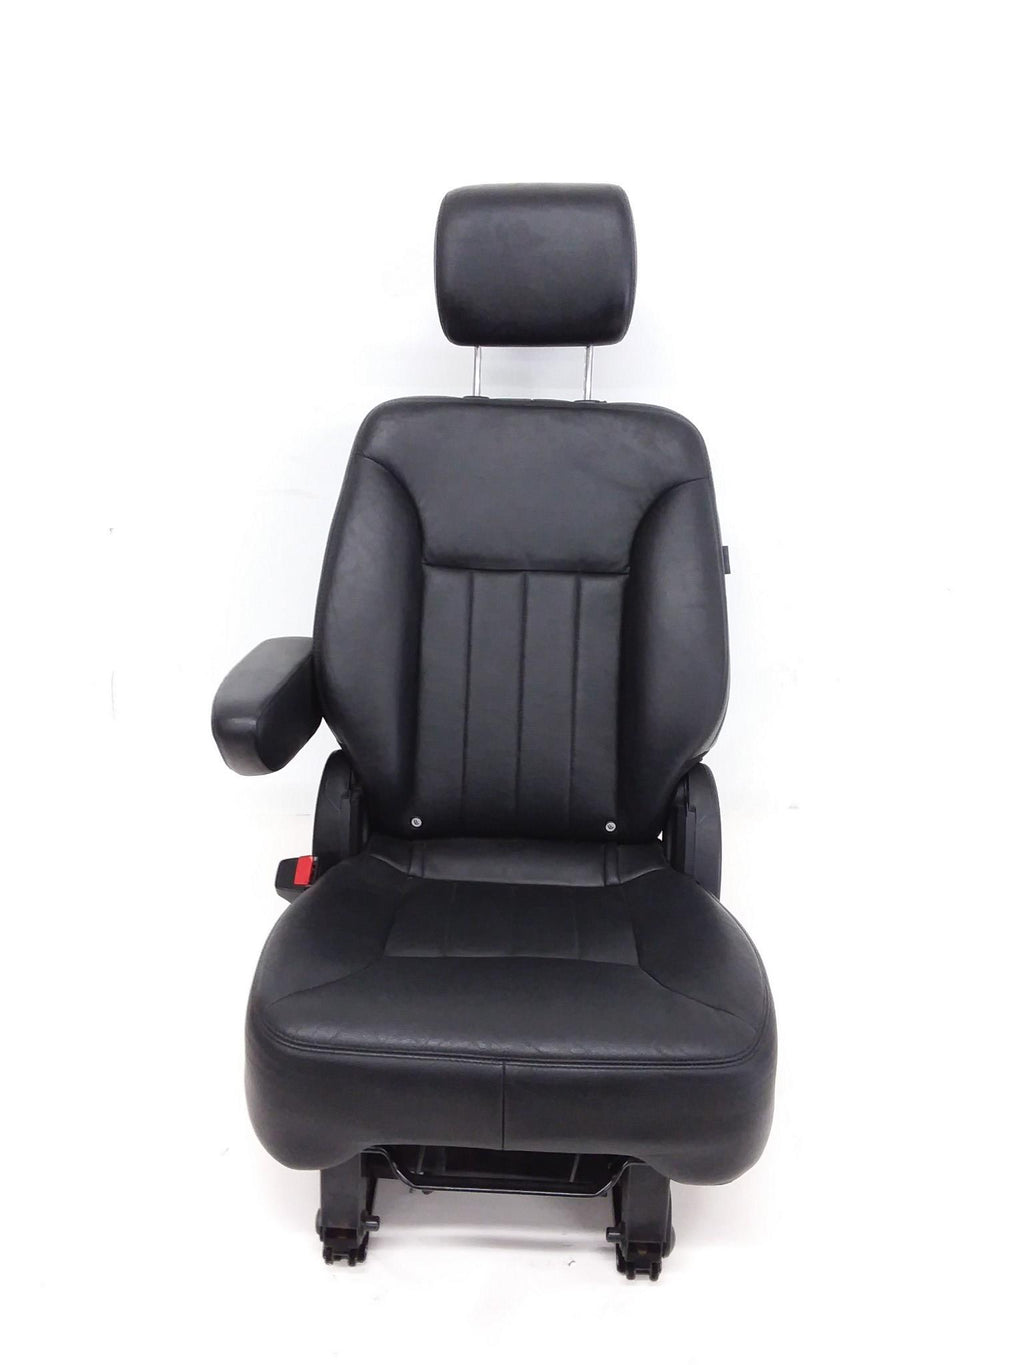 2006 - 2007 Mercedes-Benz R350 Middle Left Seat Black Leather OEM